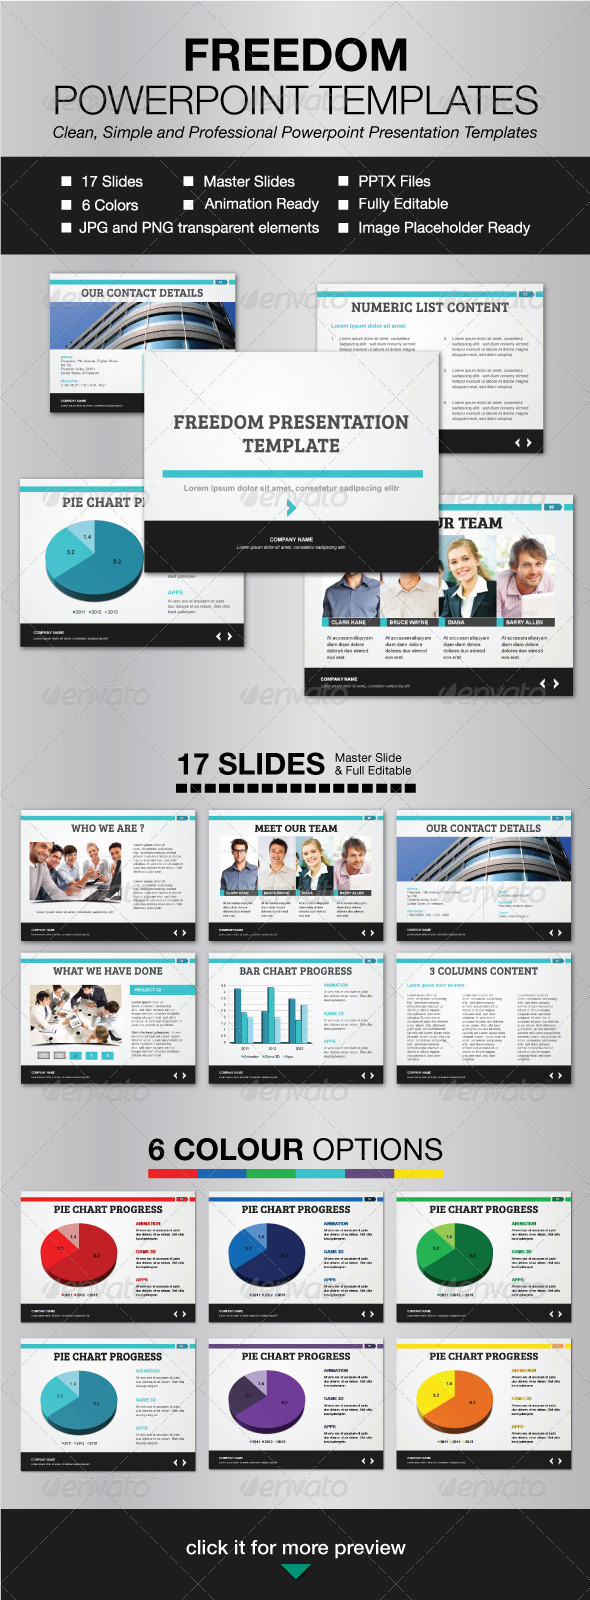 Freedom Powerpoint Template - Presentation Templates